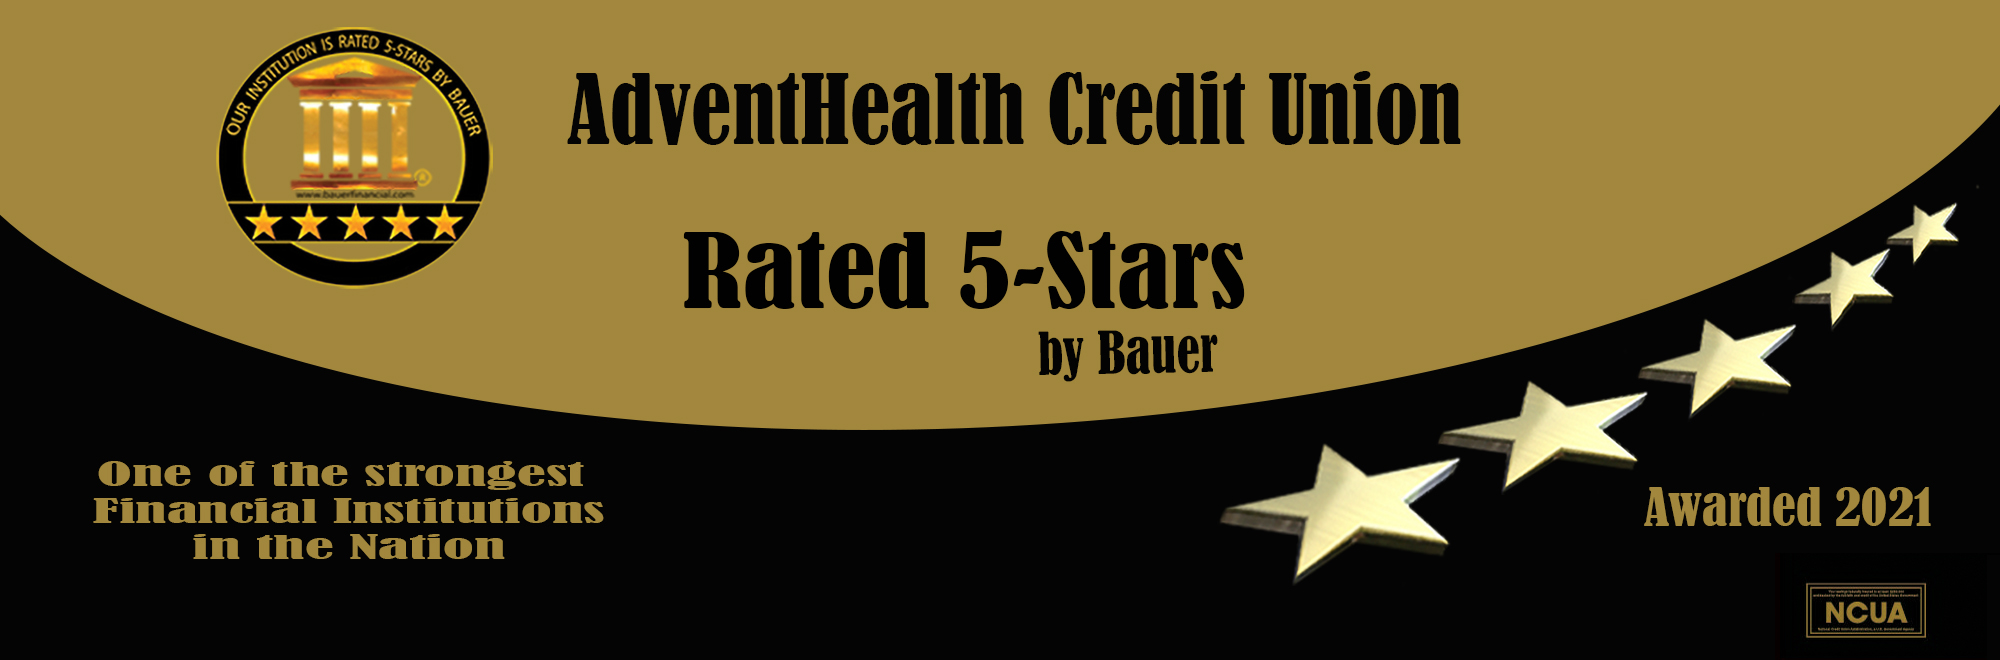 AdventHealth Credit Union rated 5 stars by Bauer in 2021. One of the nation's strongest financial institutions.